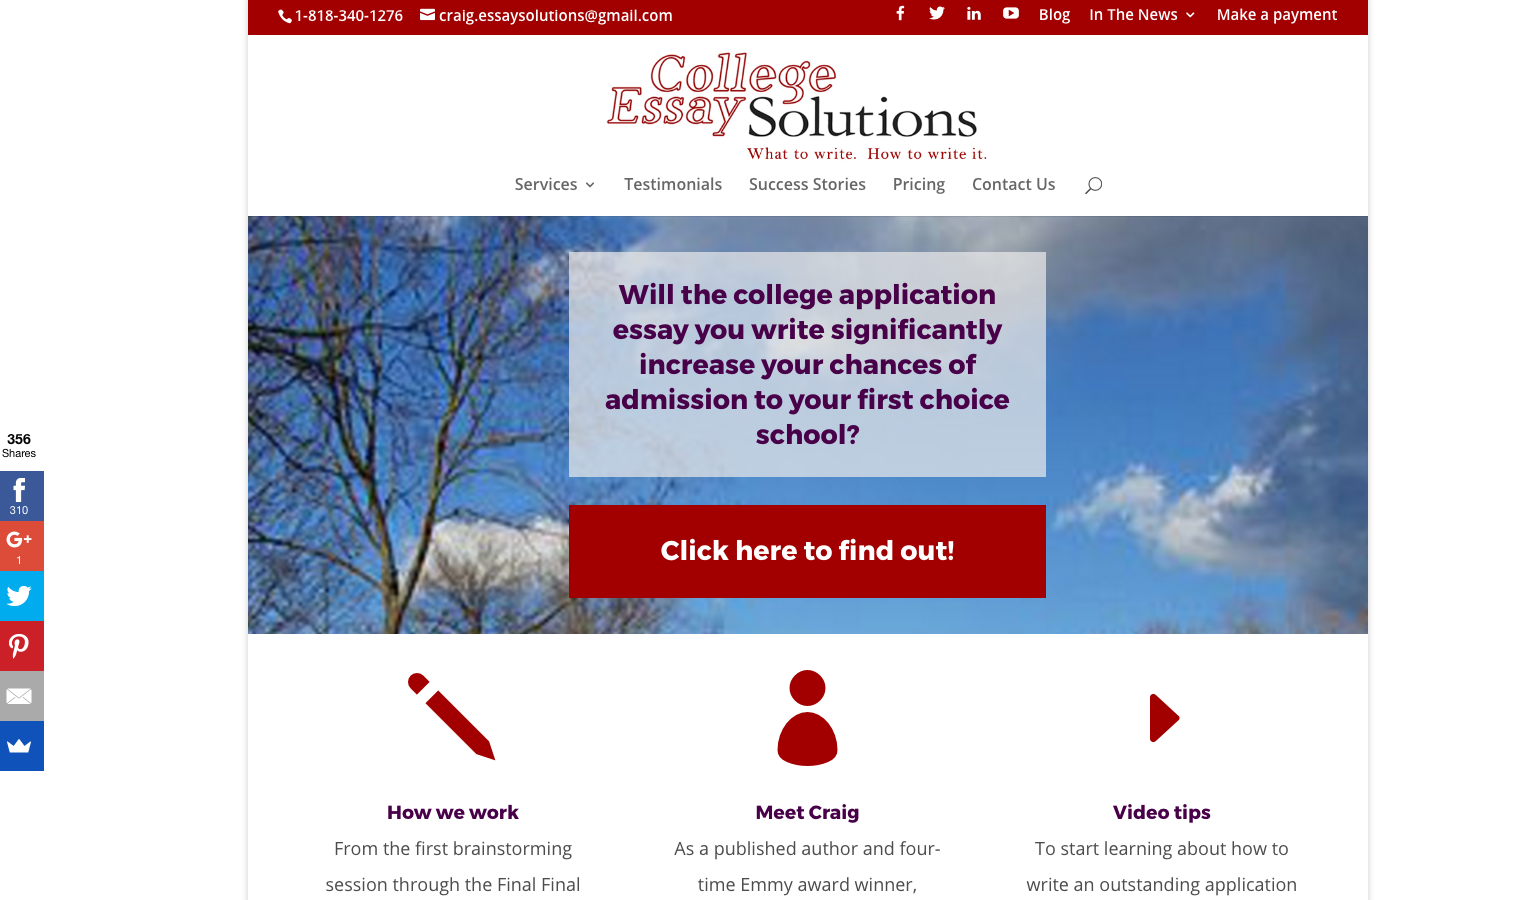 College Essay Solutions Website